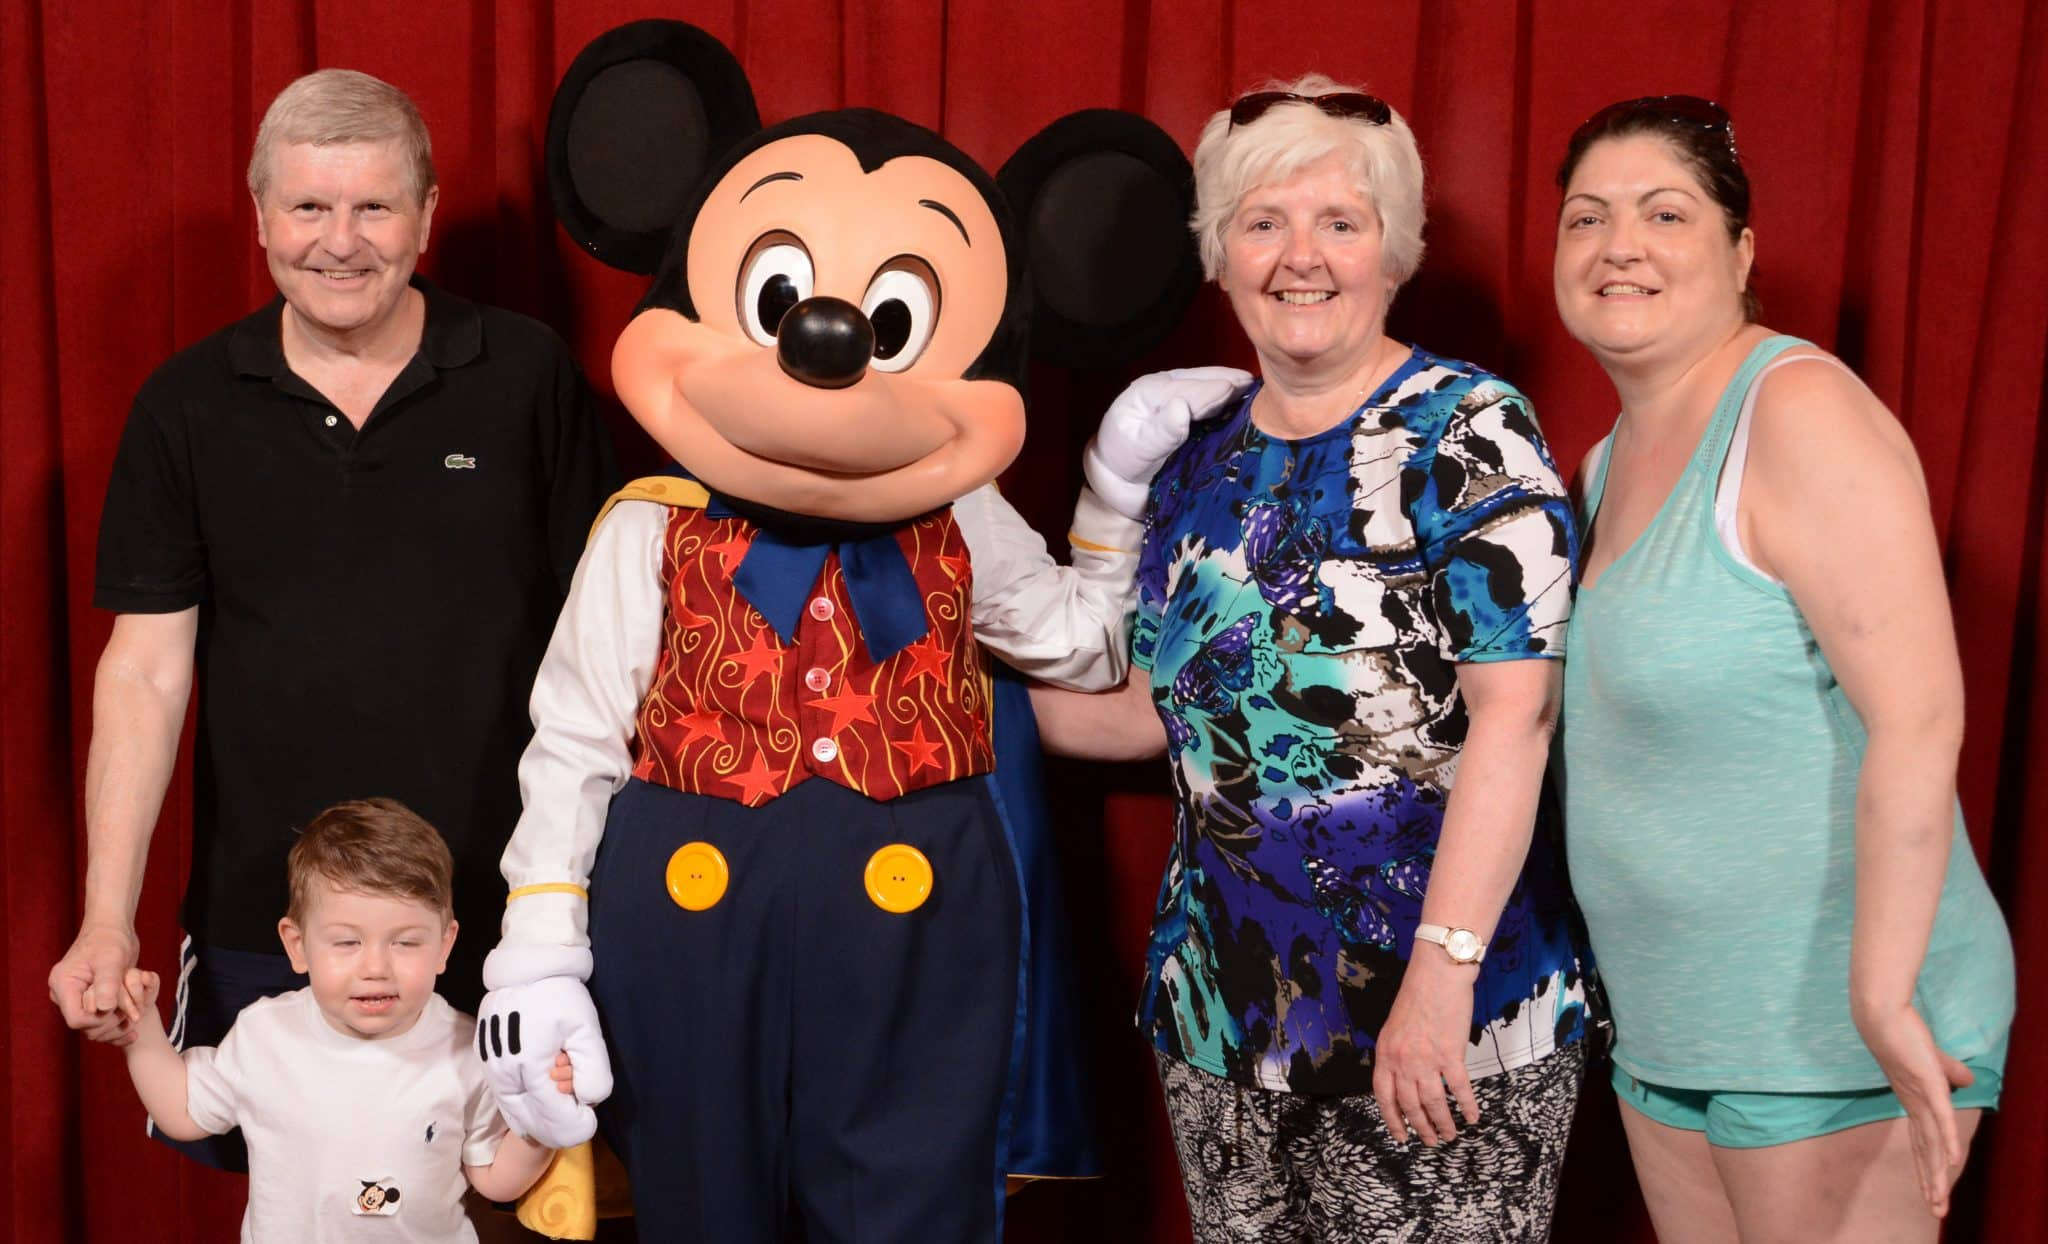 Heart transplant patient challenges scariest Disney rides: Nicola Hague and her family at Disney Land